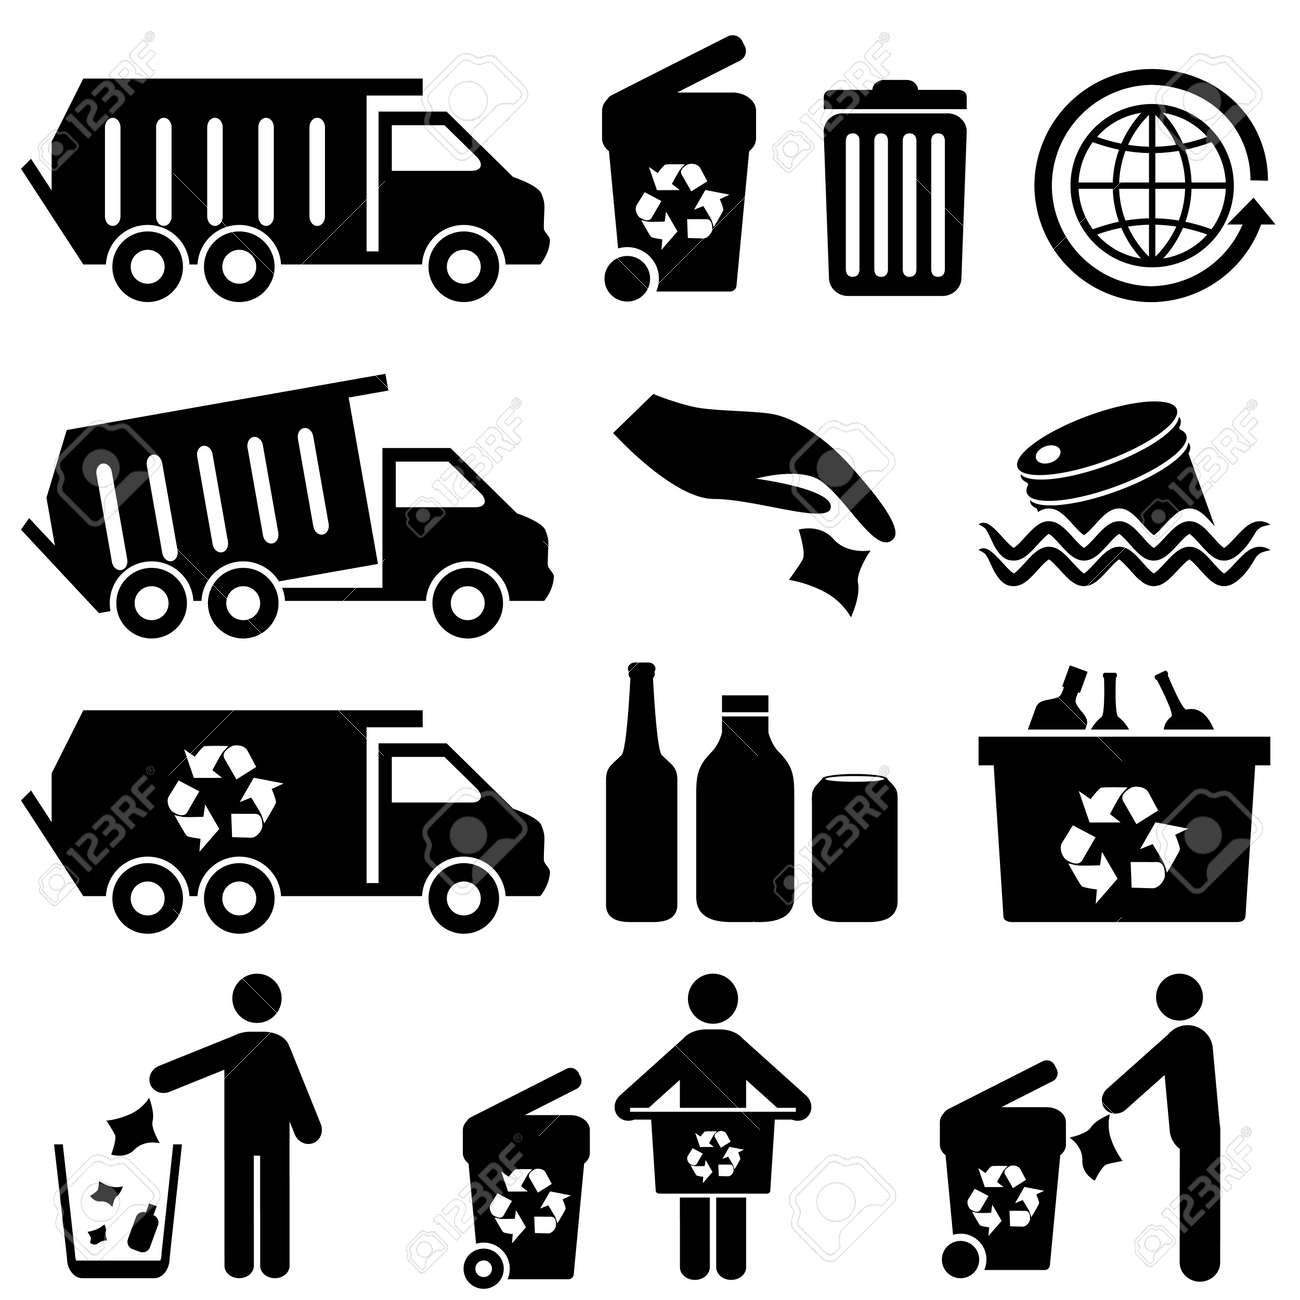 Garbage and recycling icons - 24227528